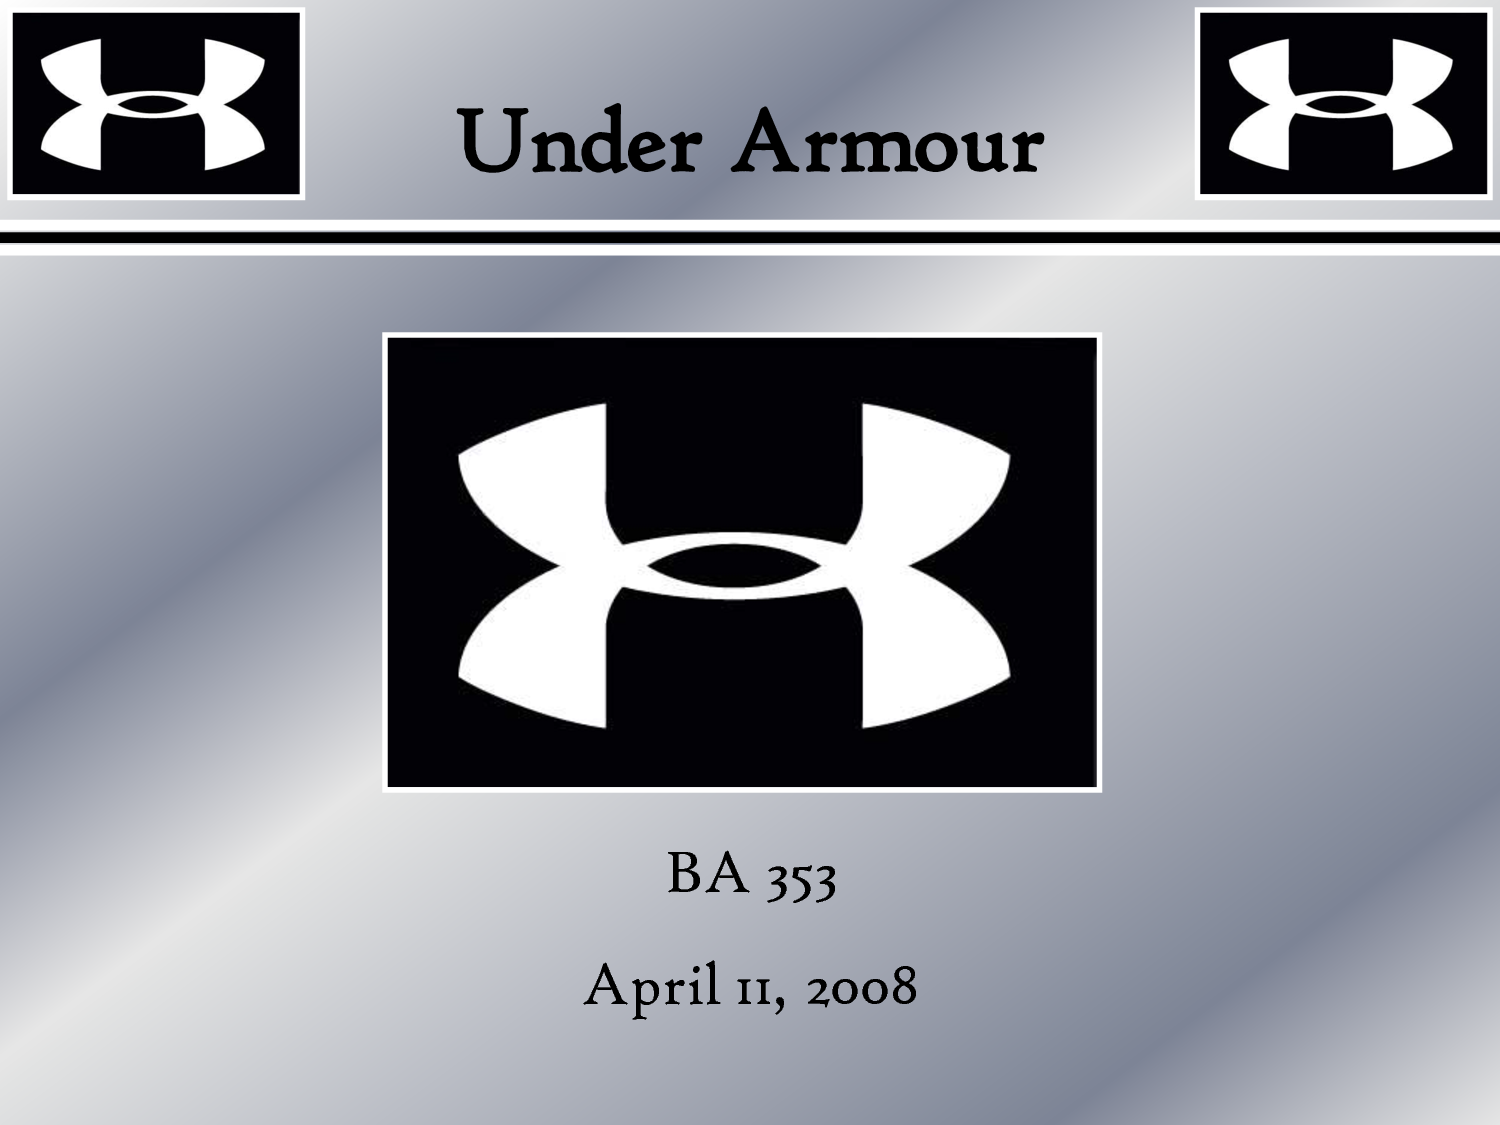 iphone wallpaper under armour - photo #14